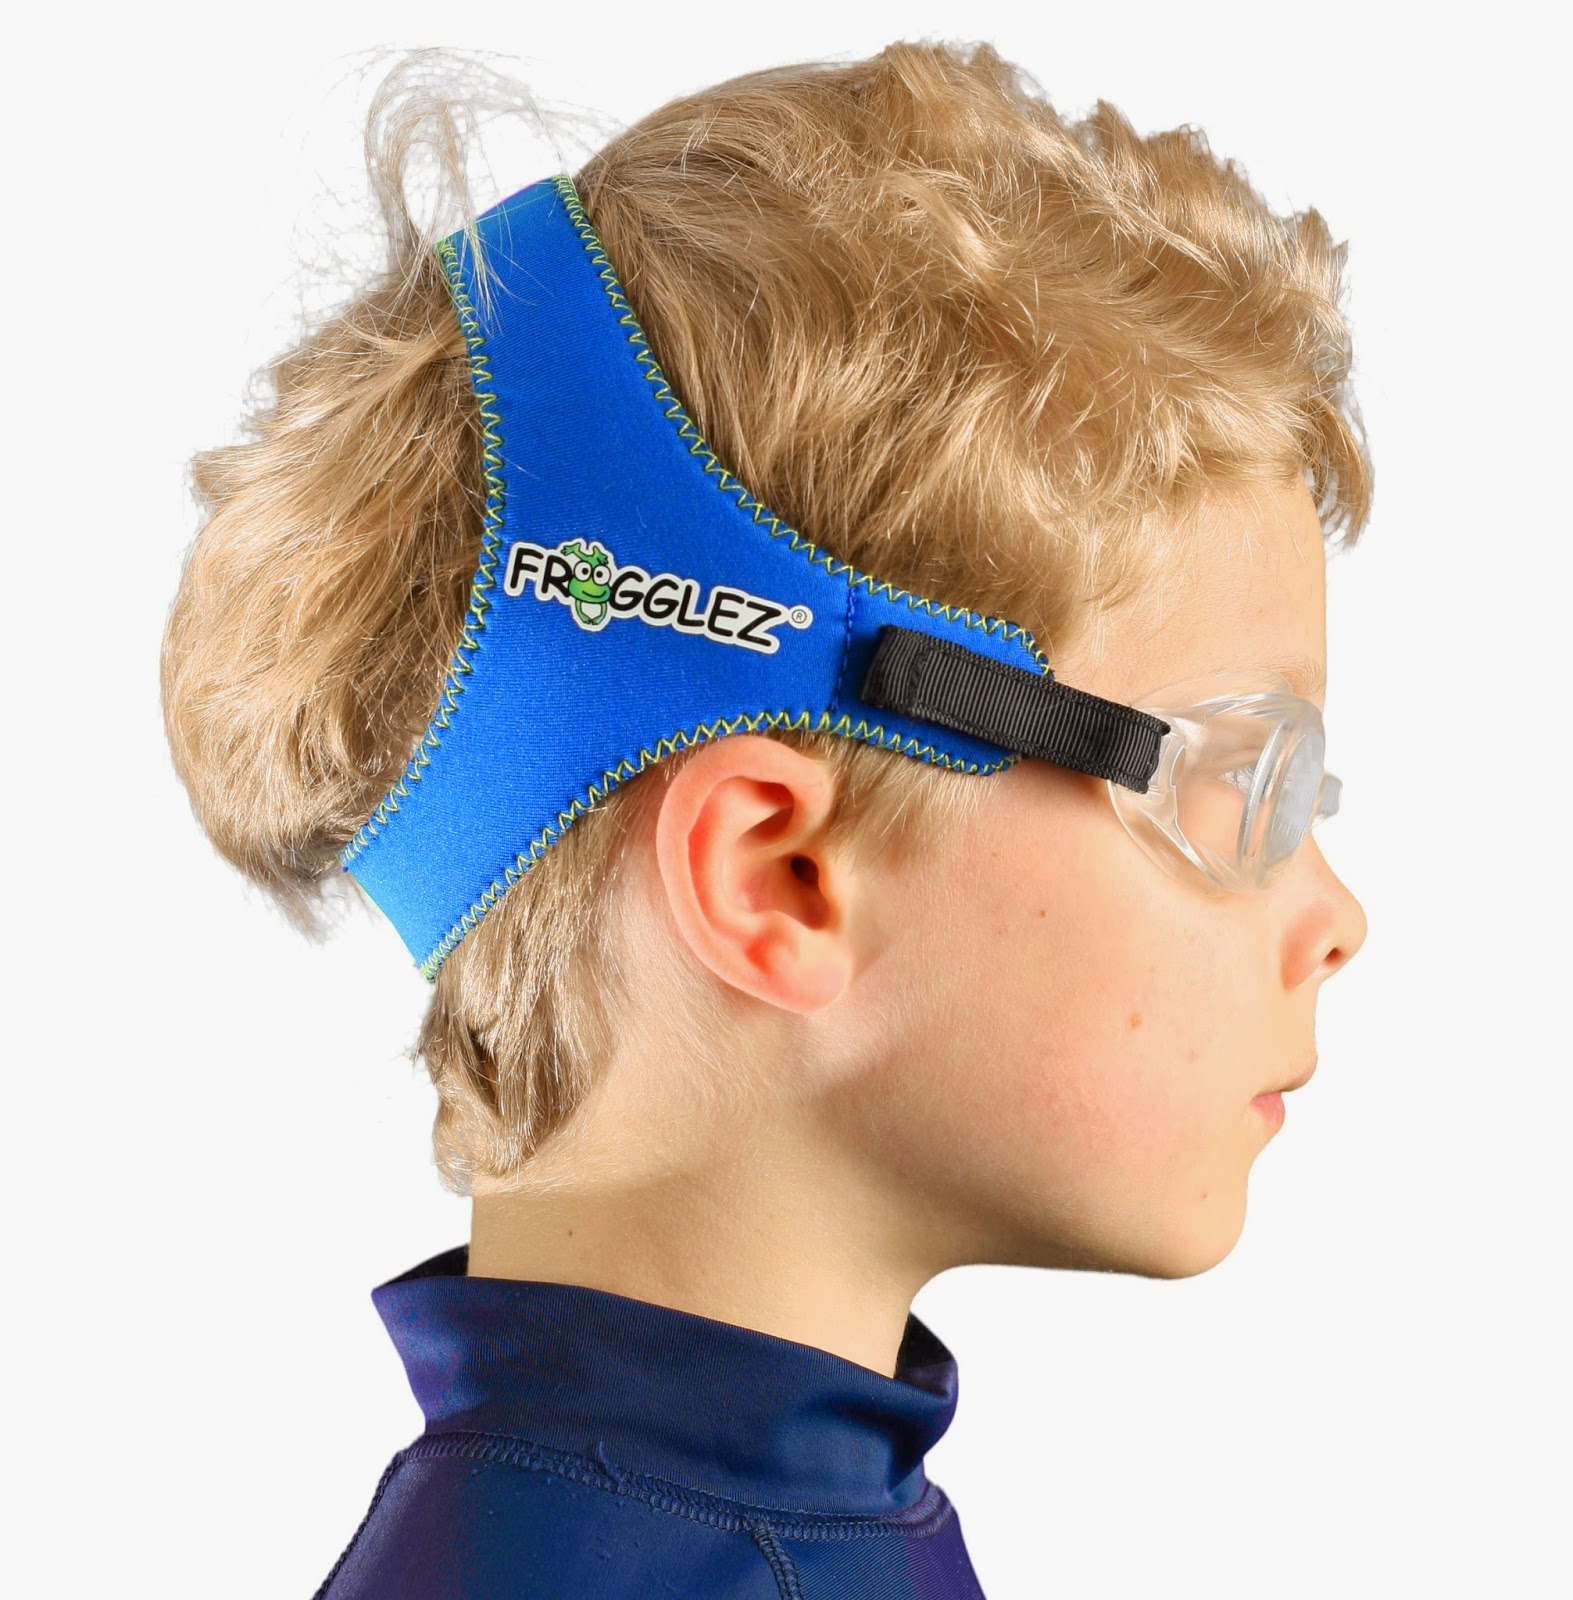 Comfortable Swim Goggles For Kids - Frogglez Goggles